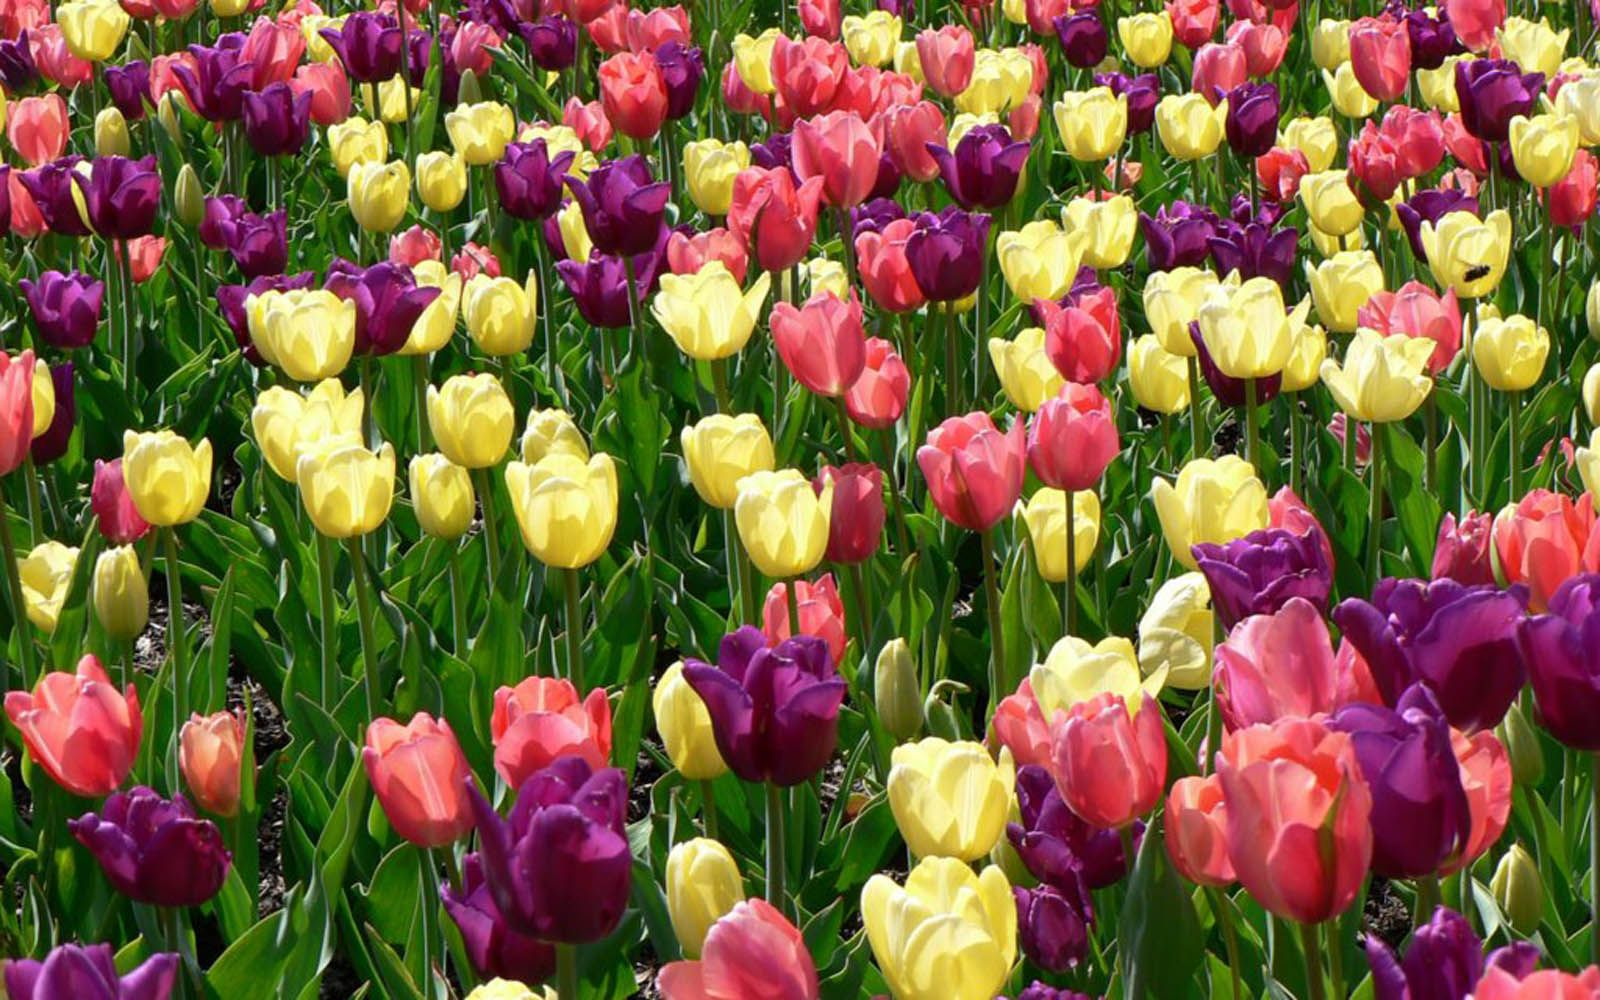 Spring Tulips Click Through To Full Image And Set As Your Desktop